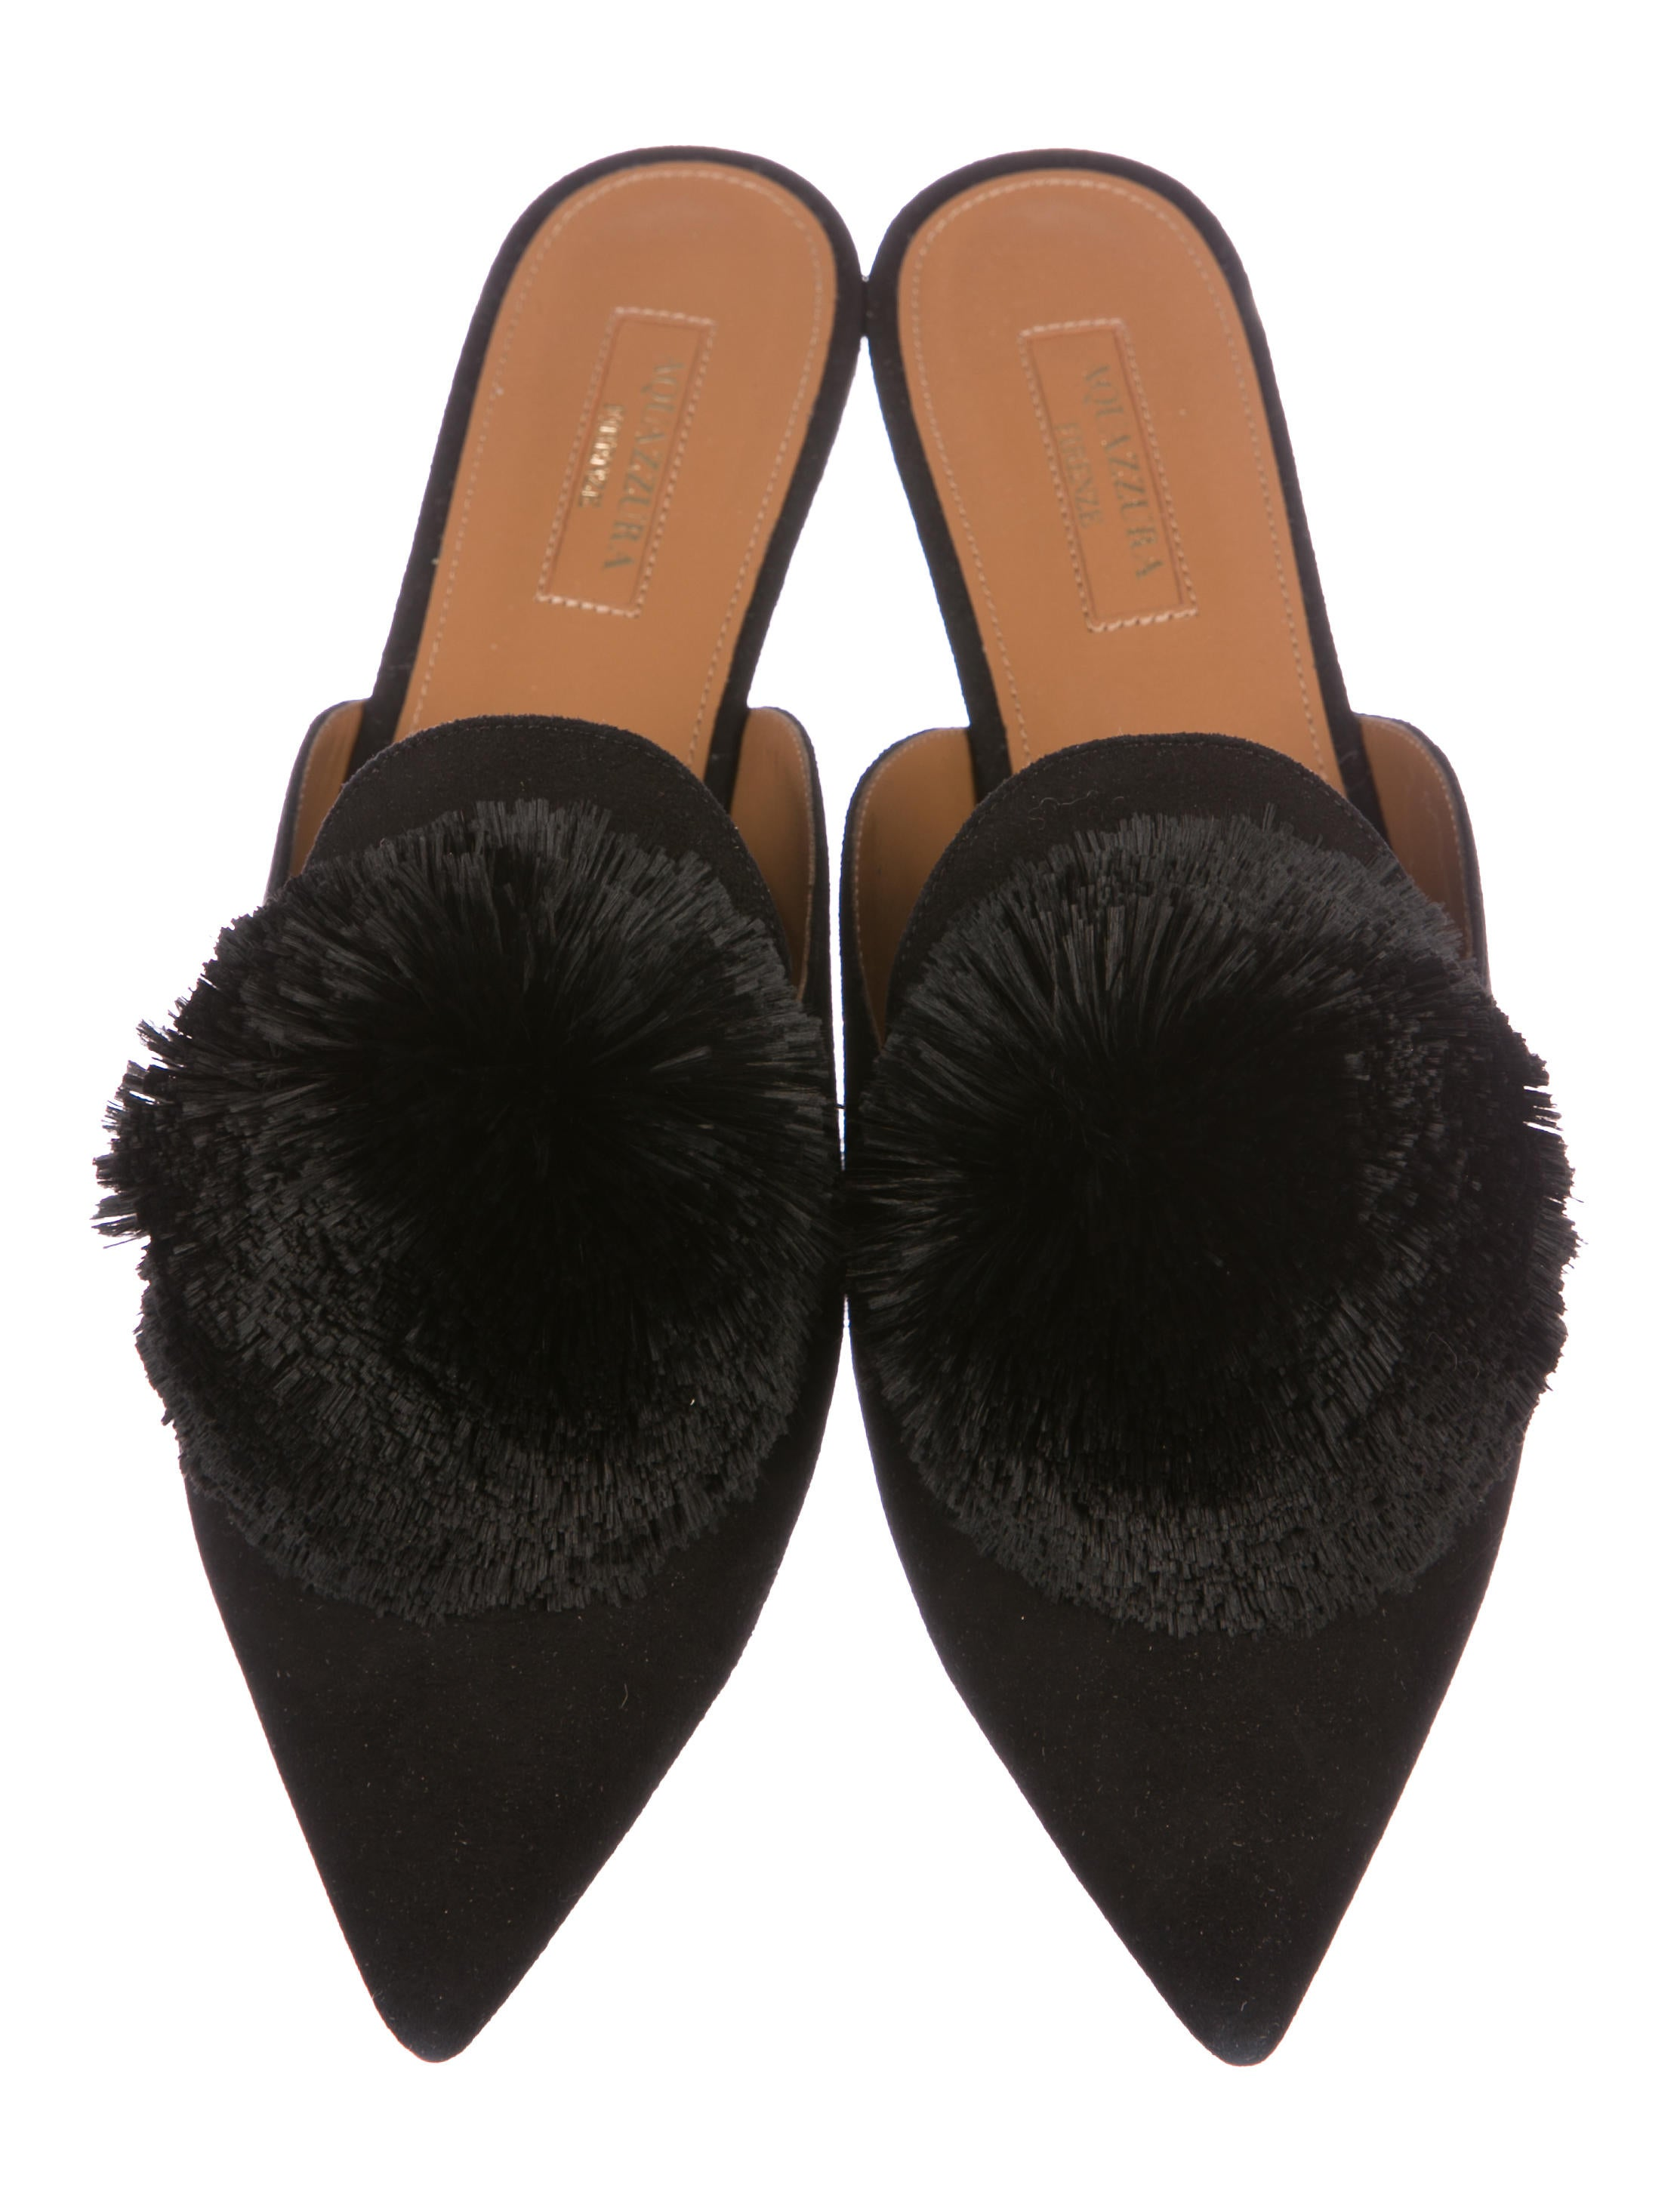 sale best store to get Aquazzura Powder Puff Mules w/ Tags buy cheap manchester great sale under 70 dollars brand new unisex online AZyyC2